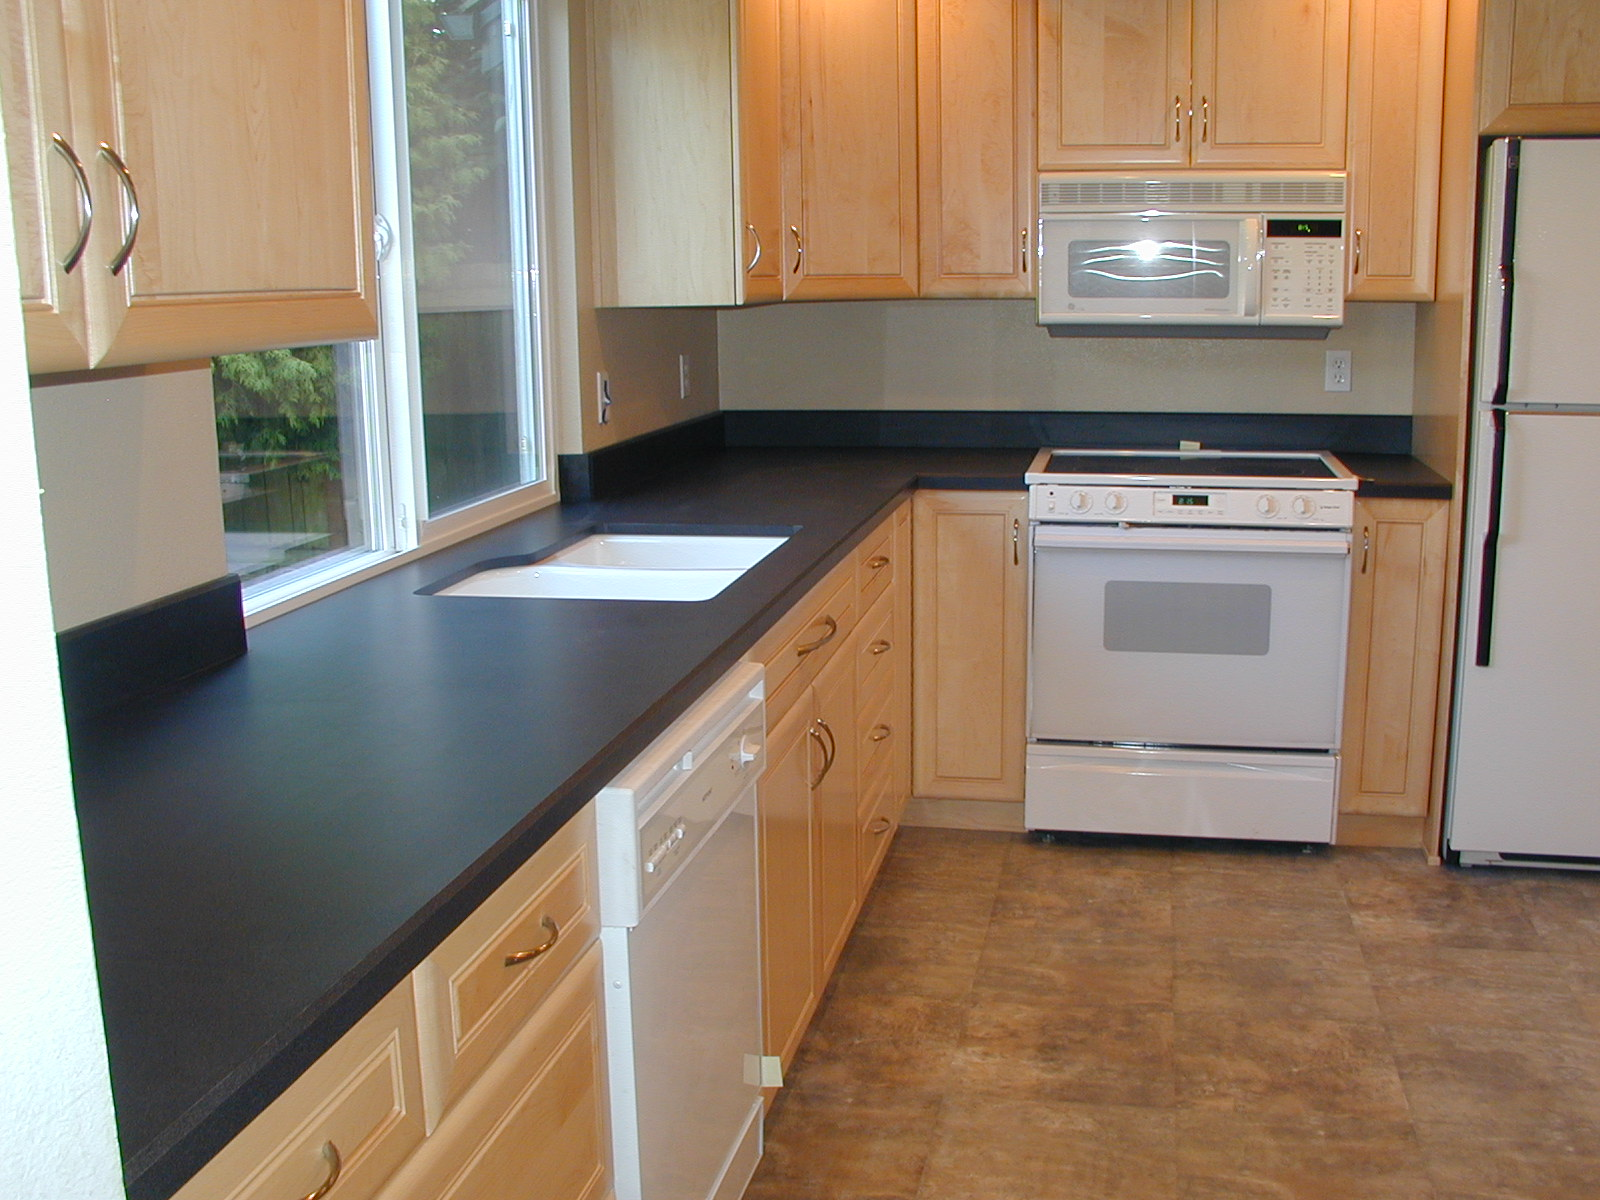 Inexpensive kitchen countertop to consider homesfeed for Inexpensive wood kitchen cabinets